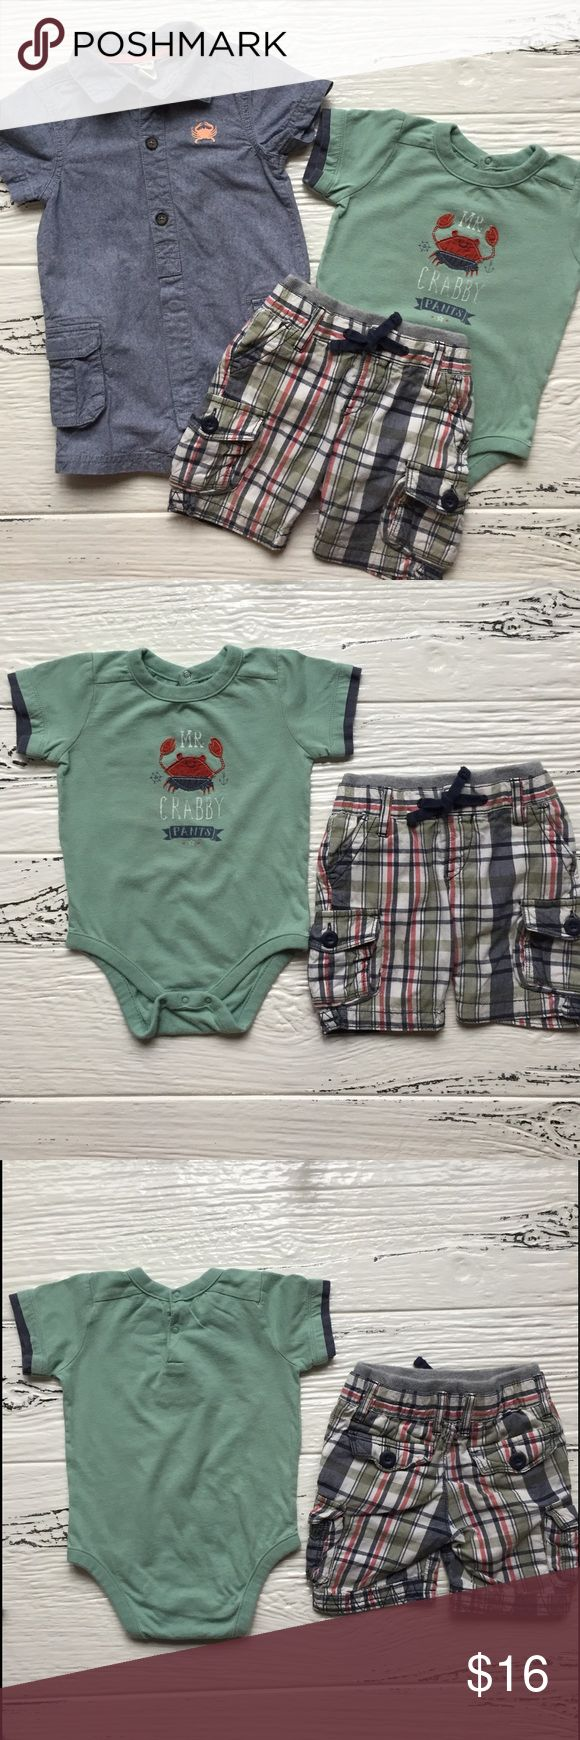 Mr. Crabby Pants 🦀 Gap 6-12M Mr. Crabby Pants matching outfit.  Top shows wear but is still adorable.  Cherokee brand 9M 🦀 romper, excellent used condition. GAP Matching Sets